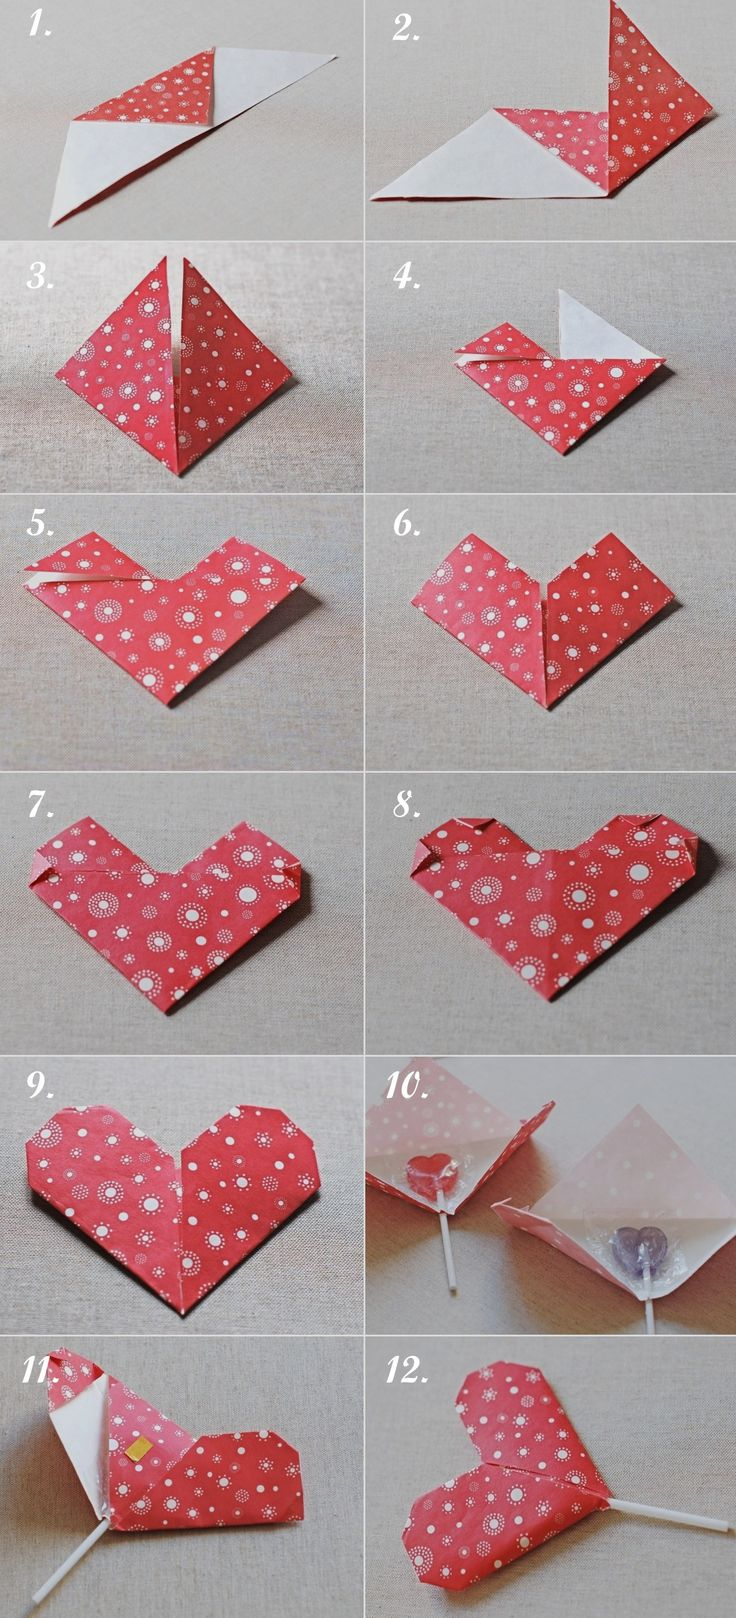 a-kiss-of-colour-diy-corazones-de-papel-para-san-valentin-paper-hearts-valentines-day-collage